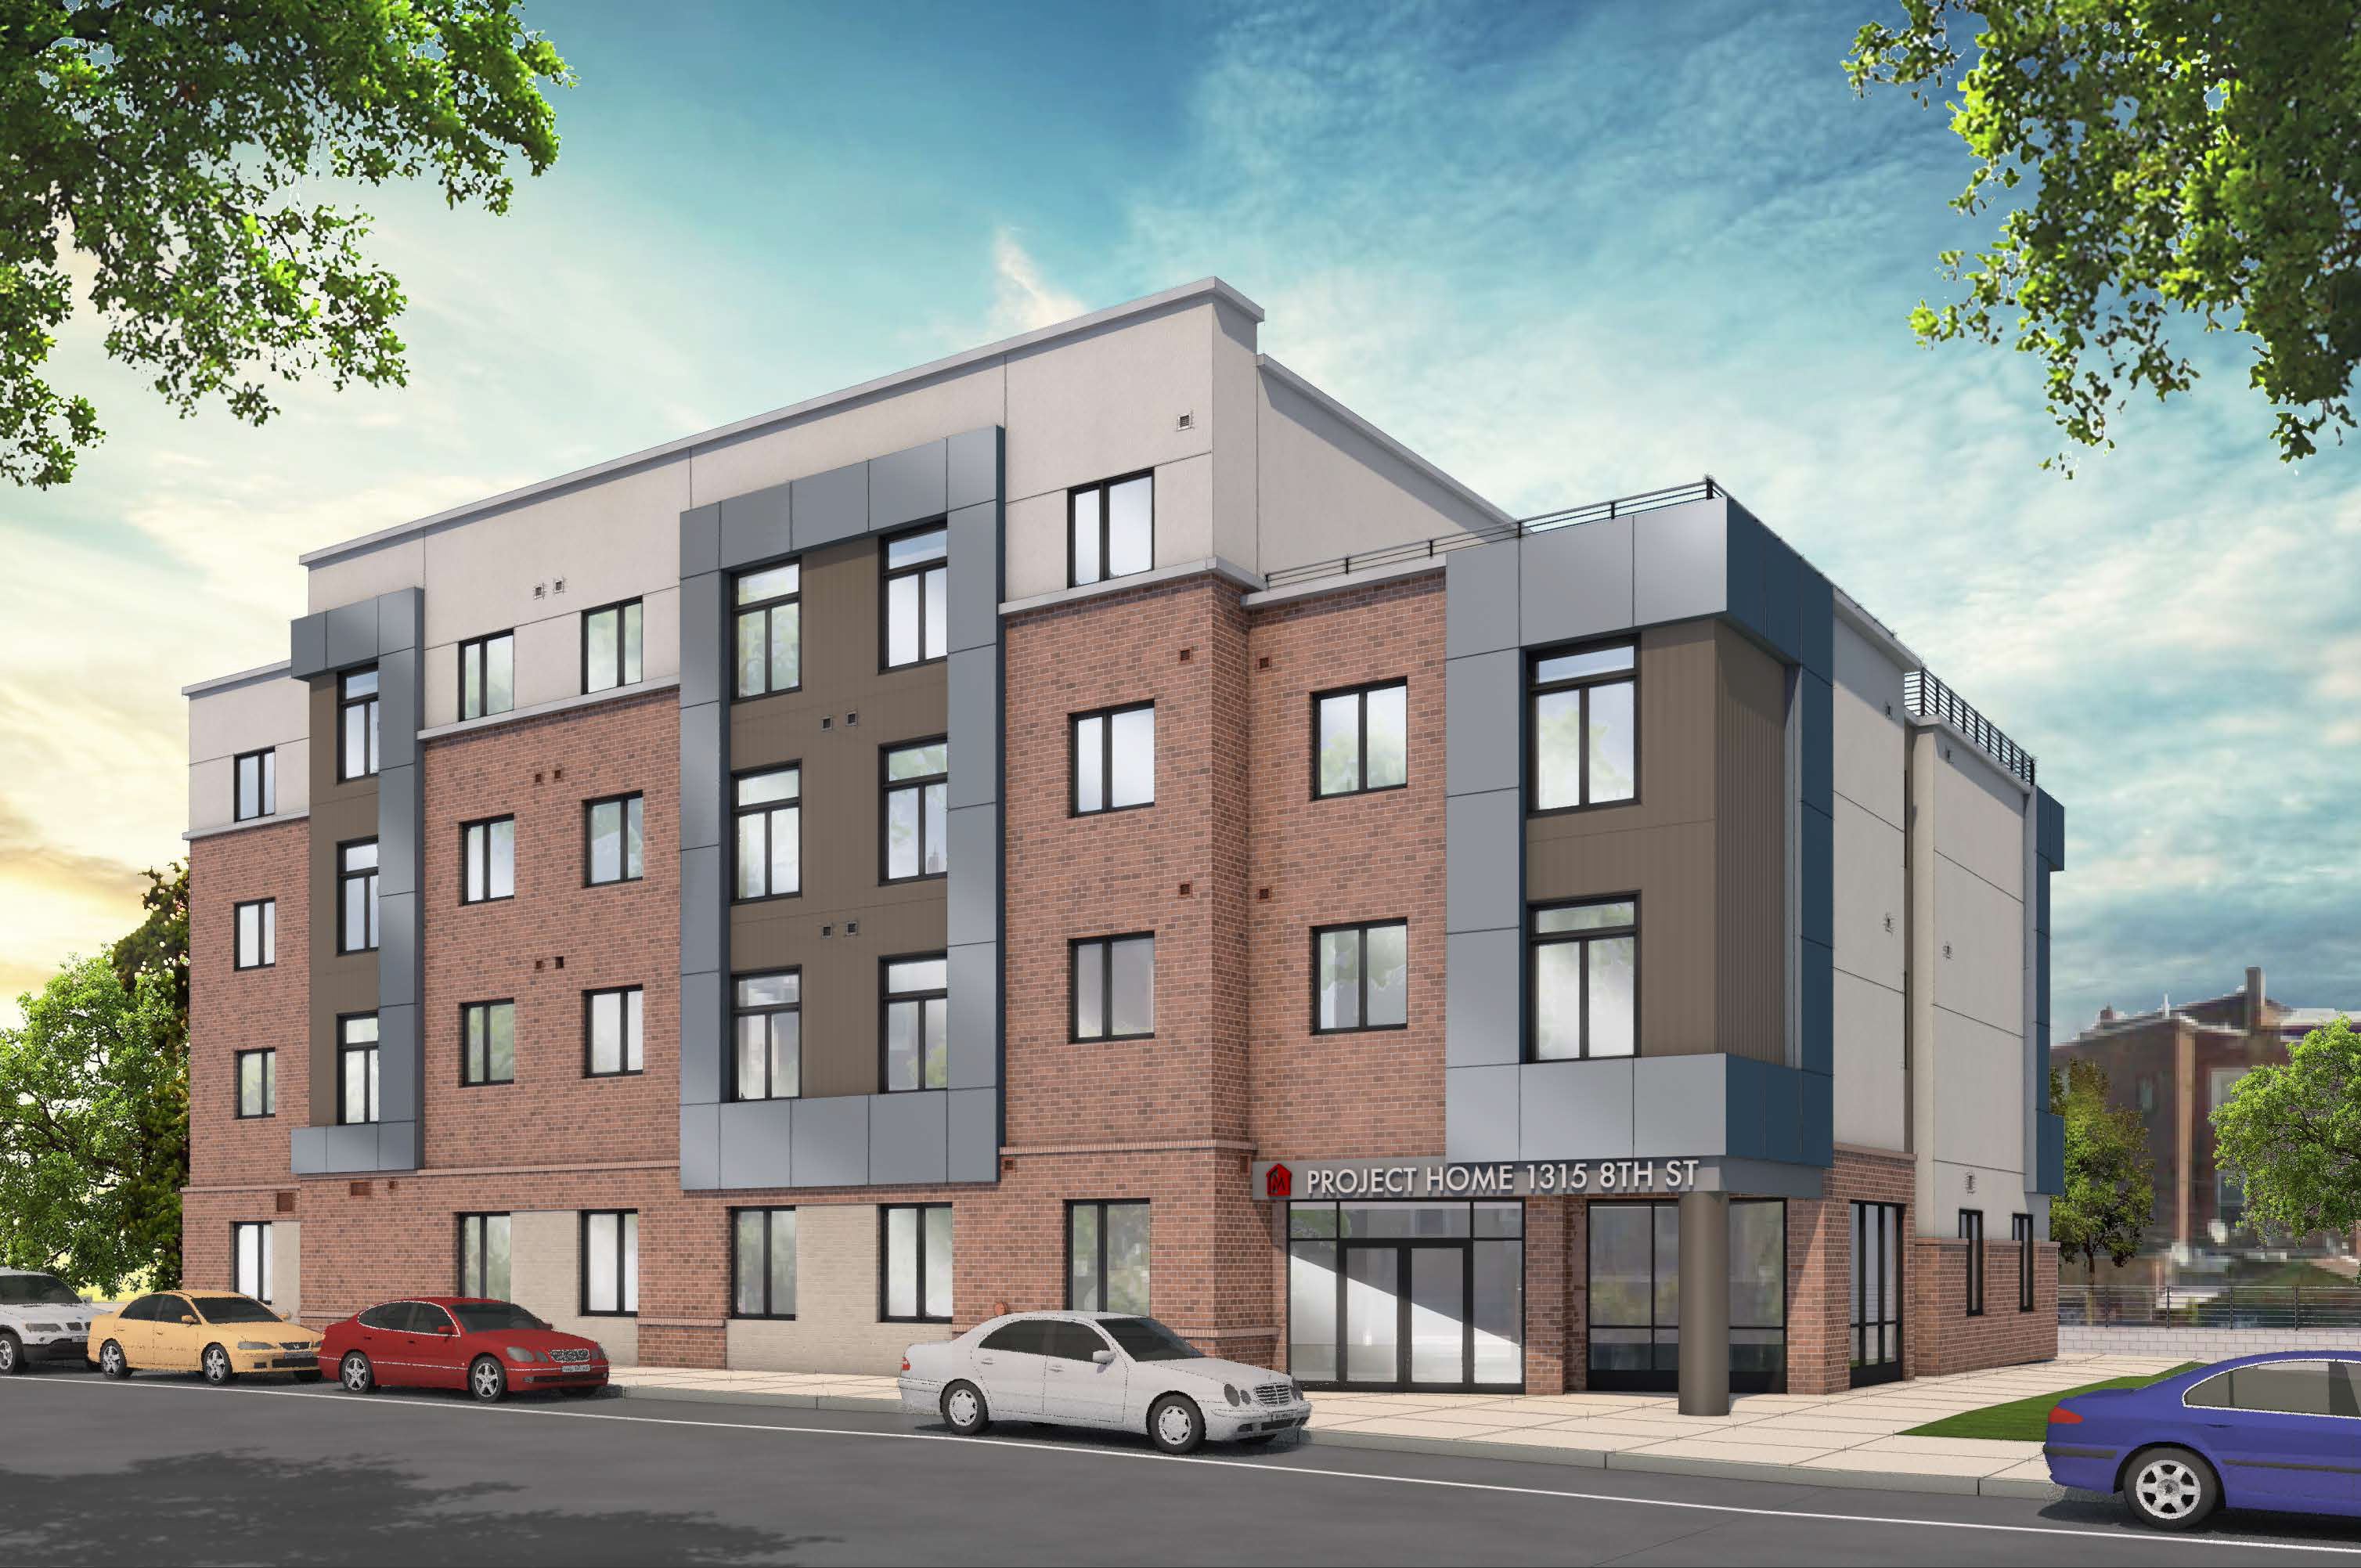 Philadelphia Affordable Housing - Curbed Philly